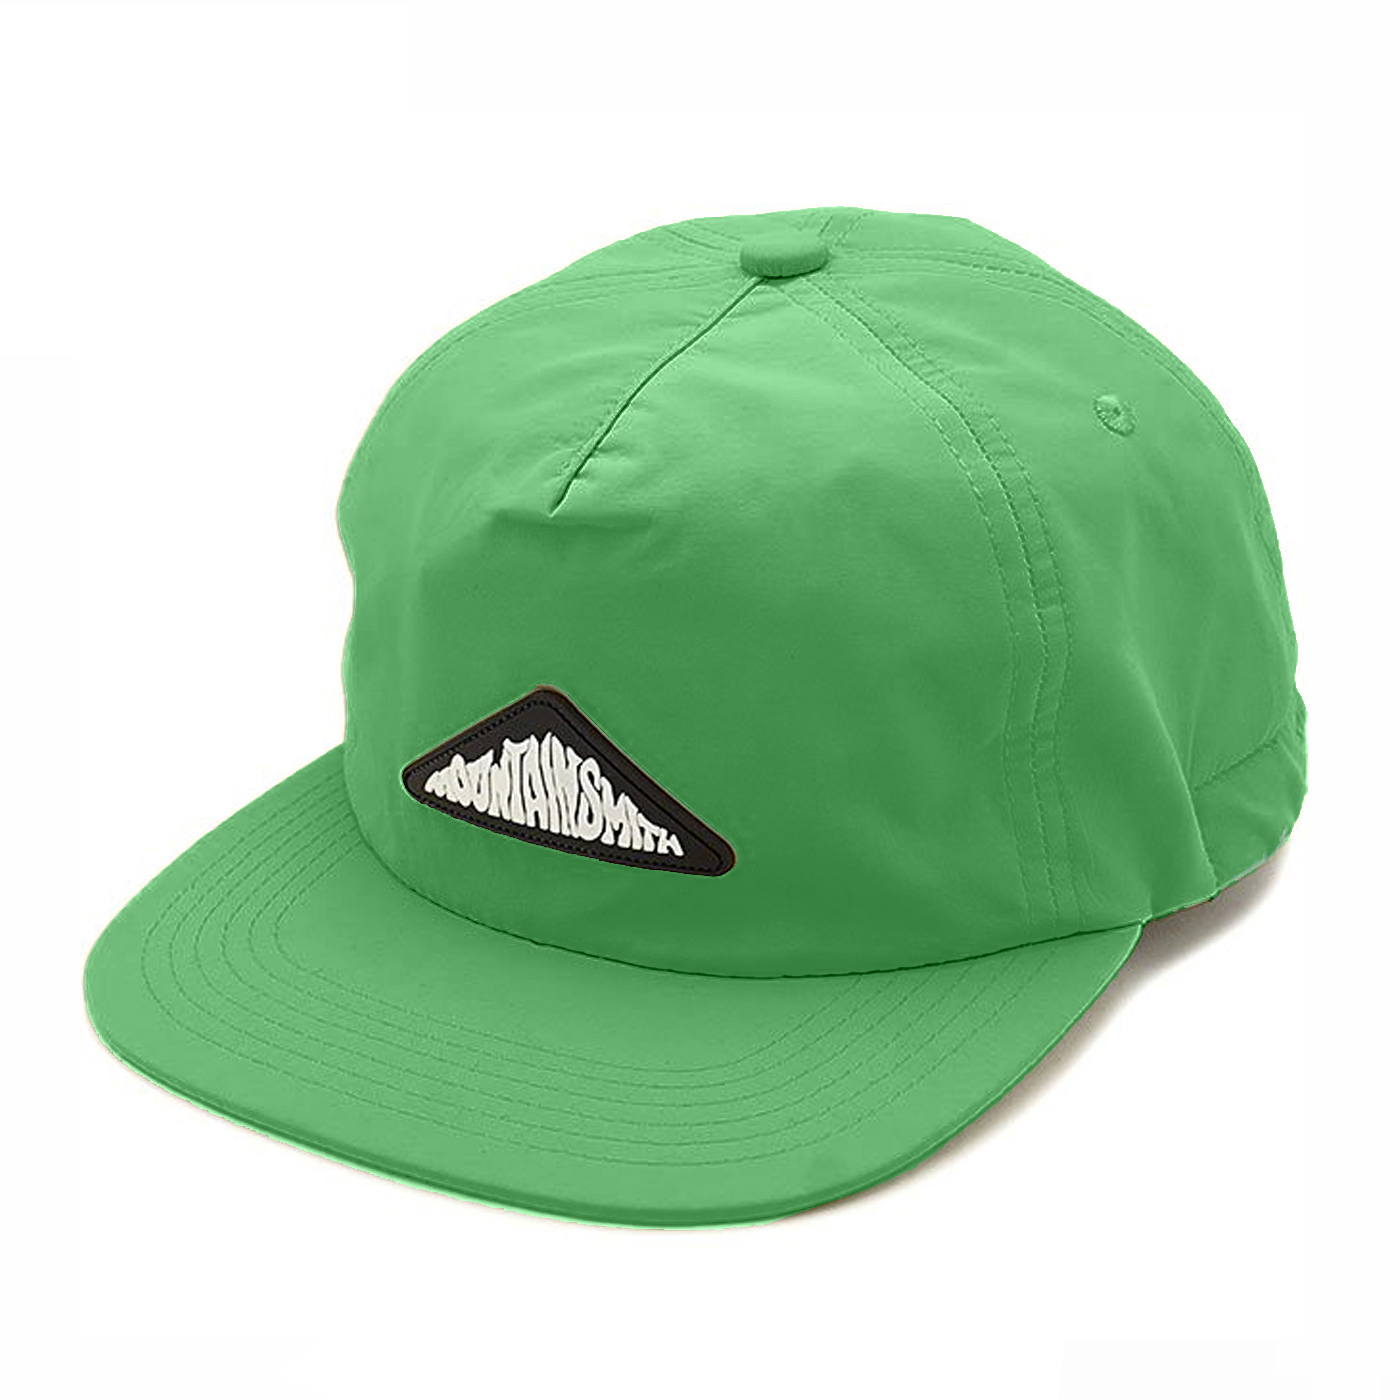 product: MS GARFIELD CAP / color: GREEN 1